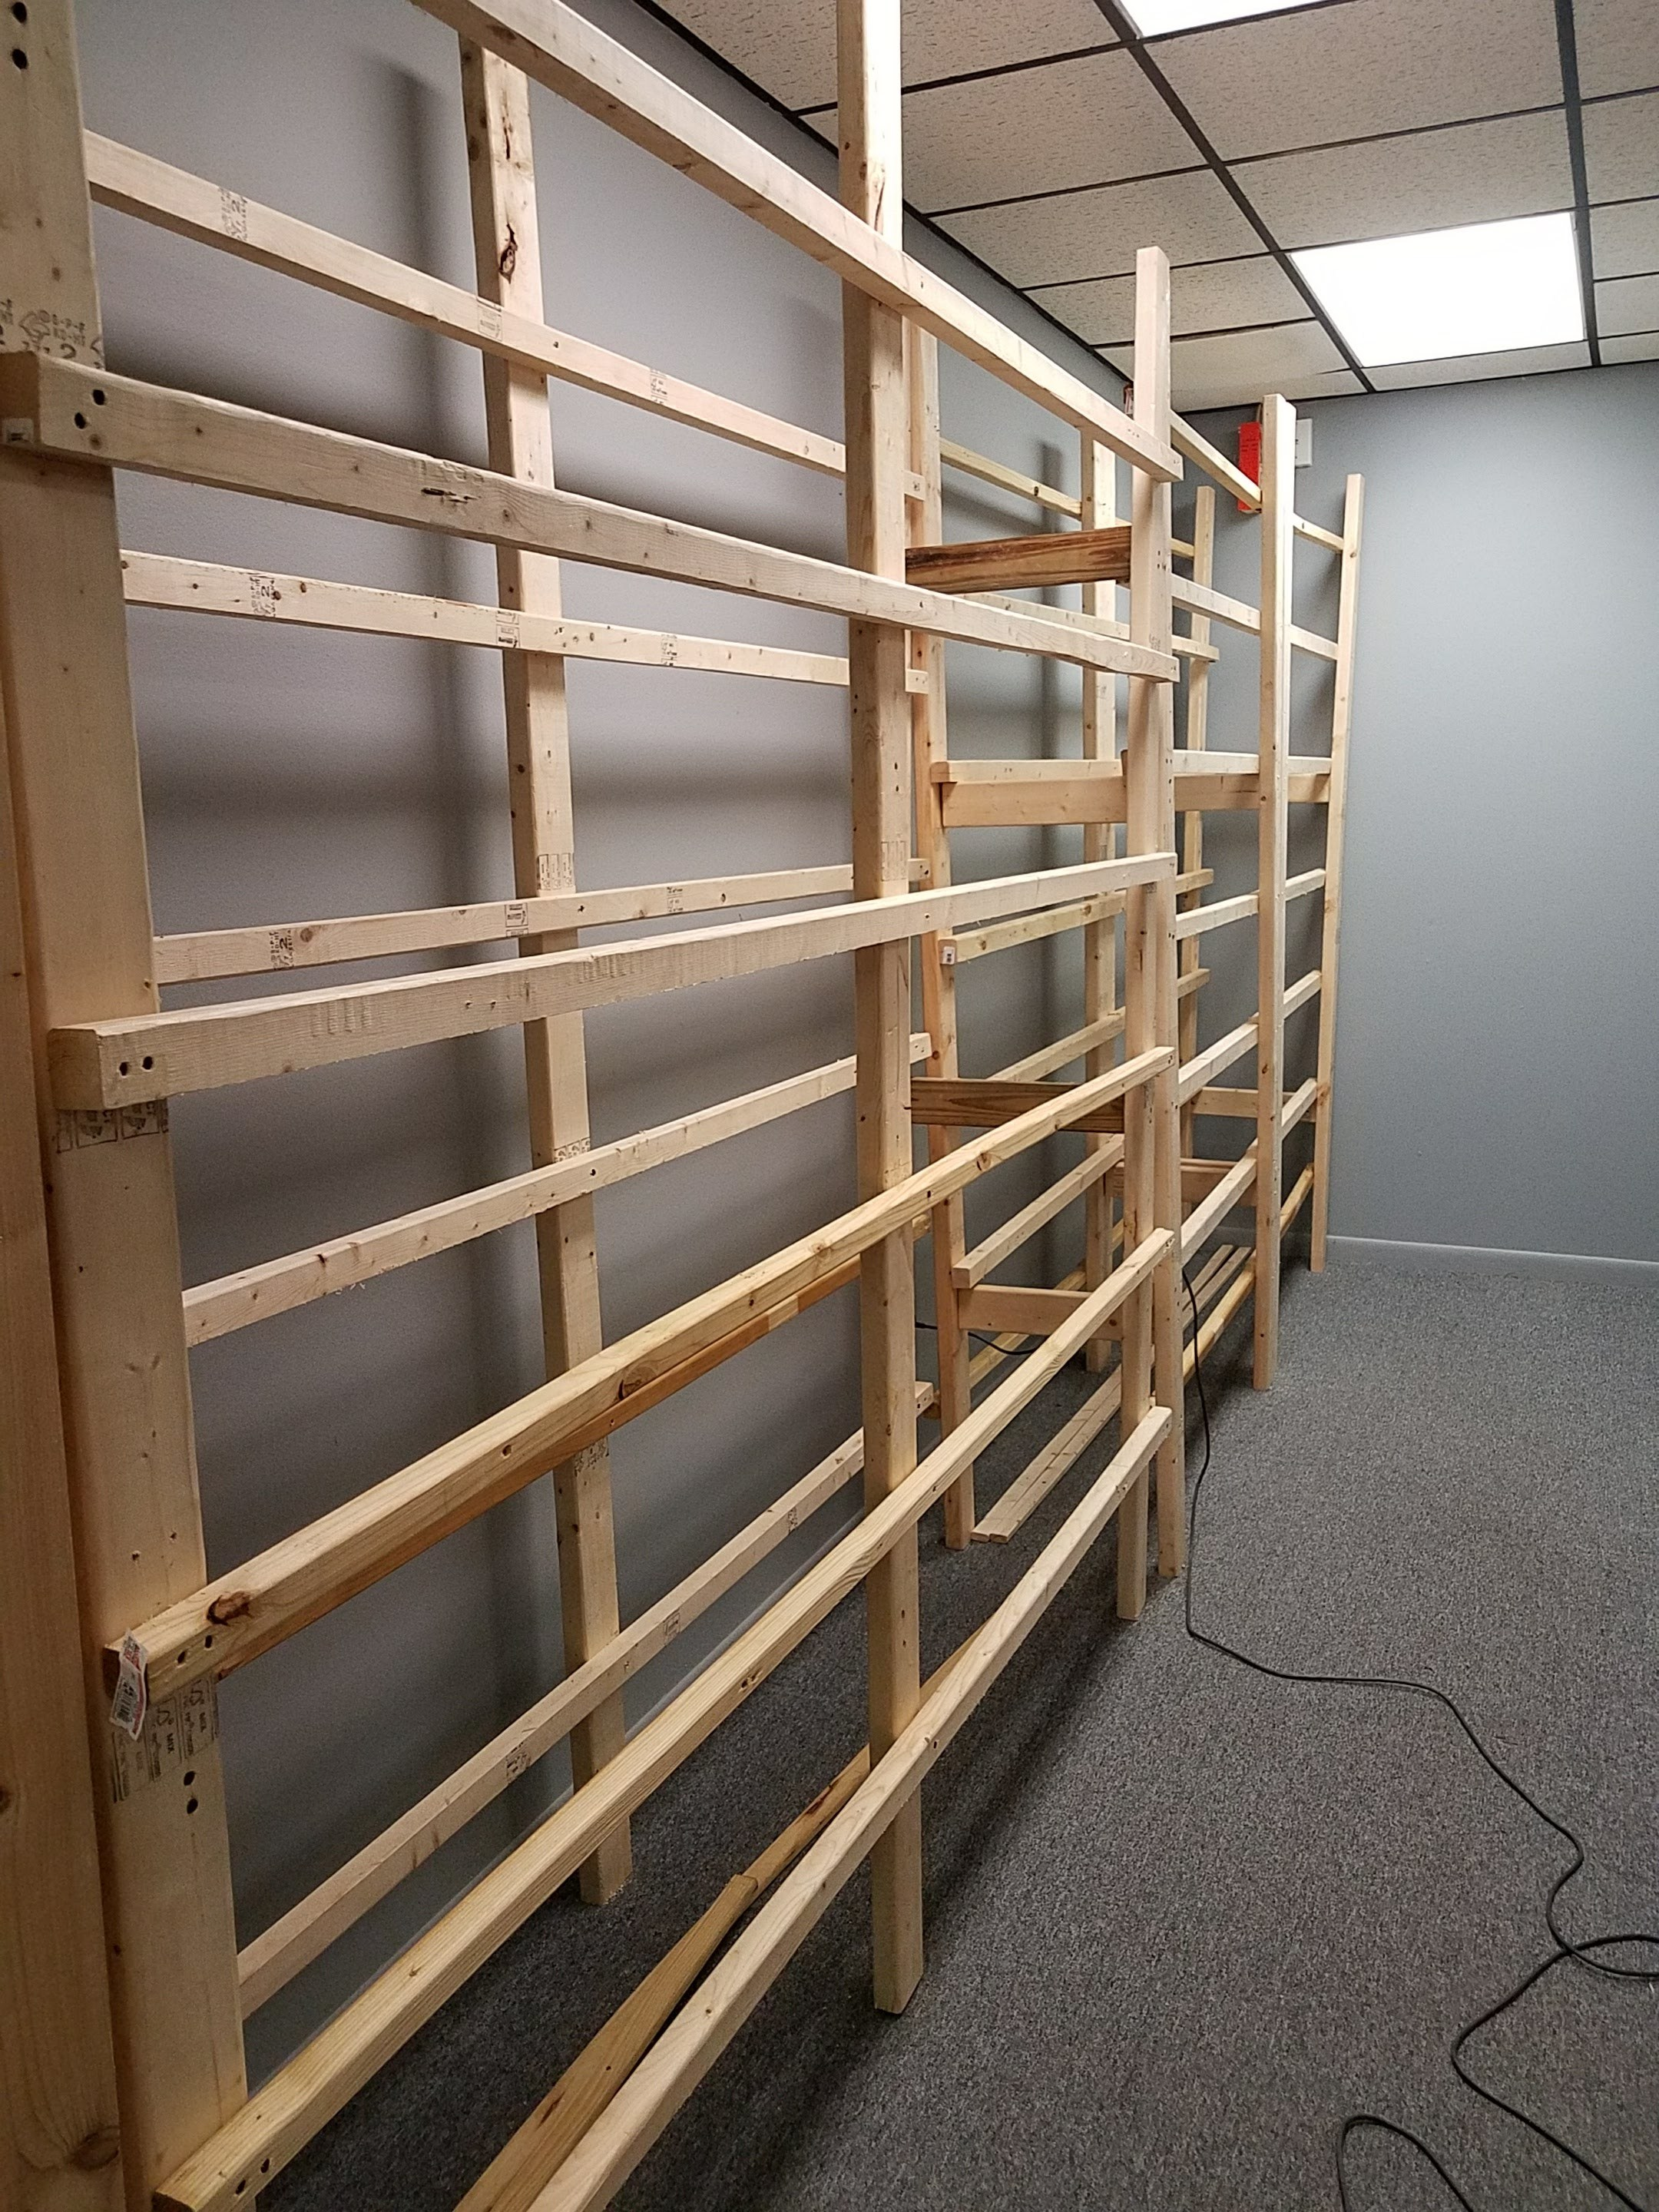 Finally, - they got the last 24 feet of shelving into place. It seemed like an eternity, but it was just an hour or so... but I was antsy.